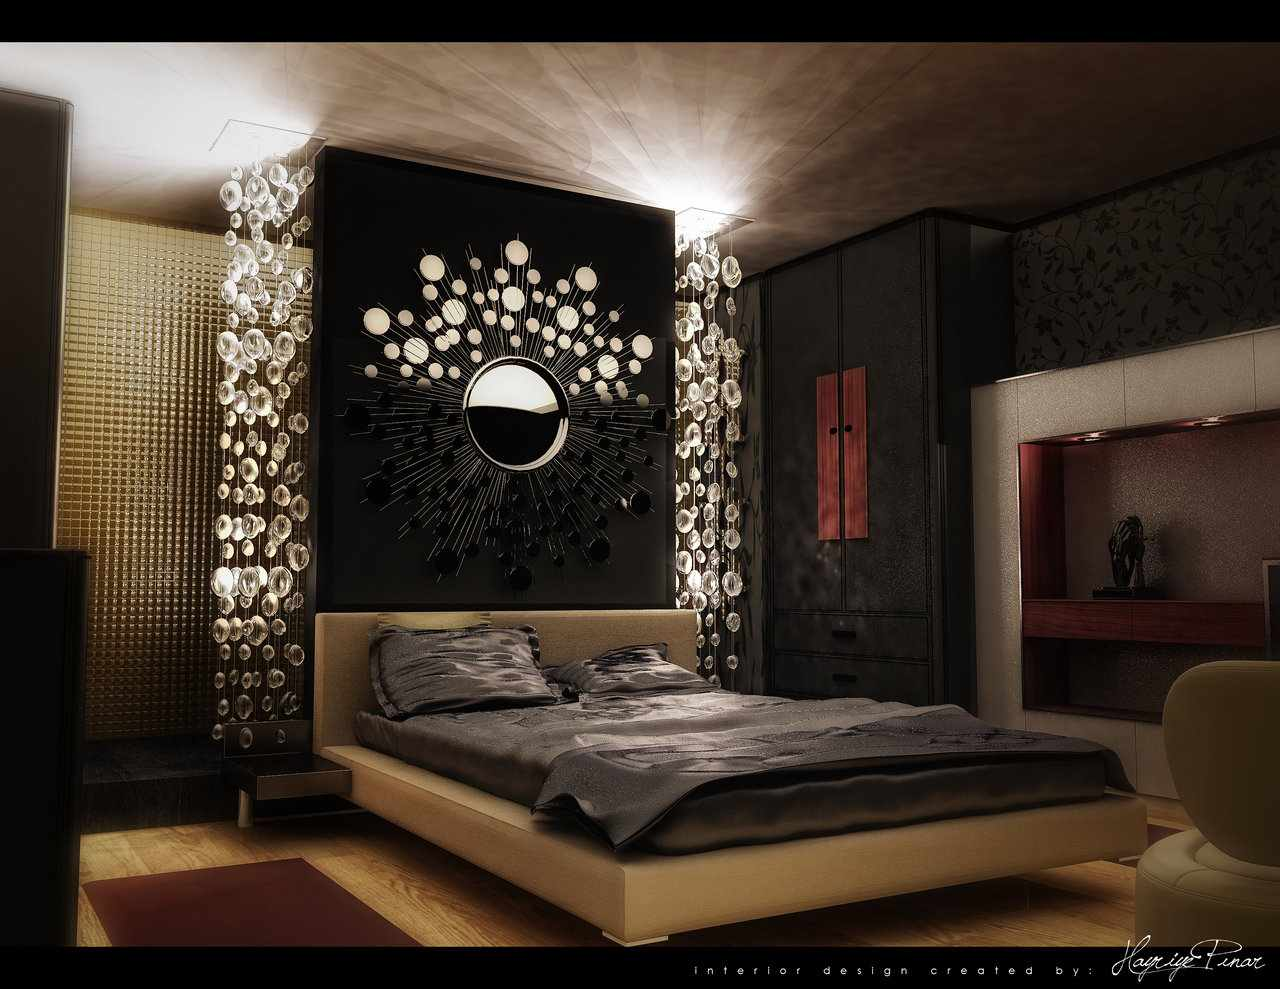 Ikea bedroom ideas ikea bedroom 2014 ideas room design for Bedroom planning ideas